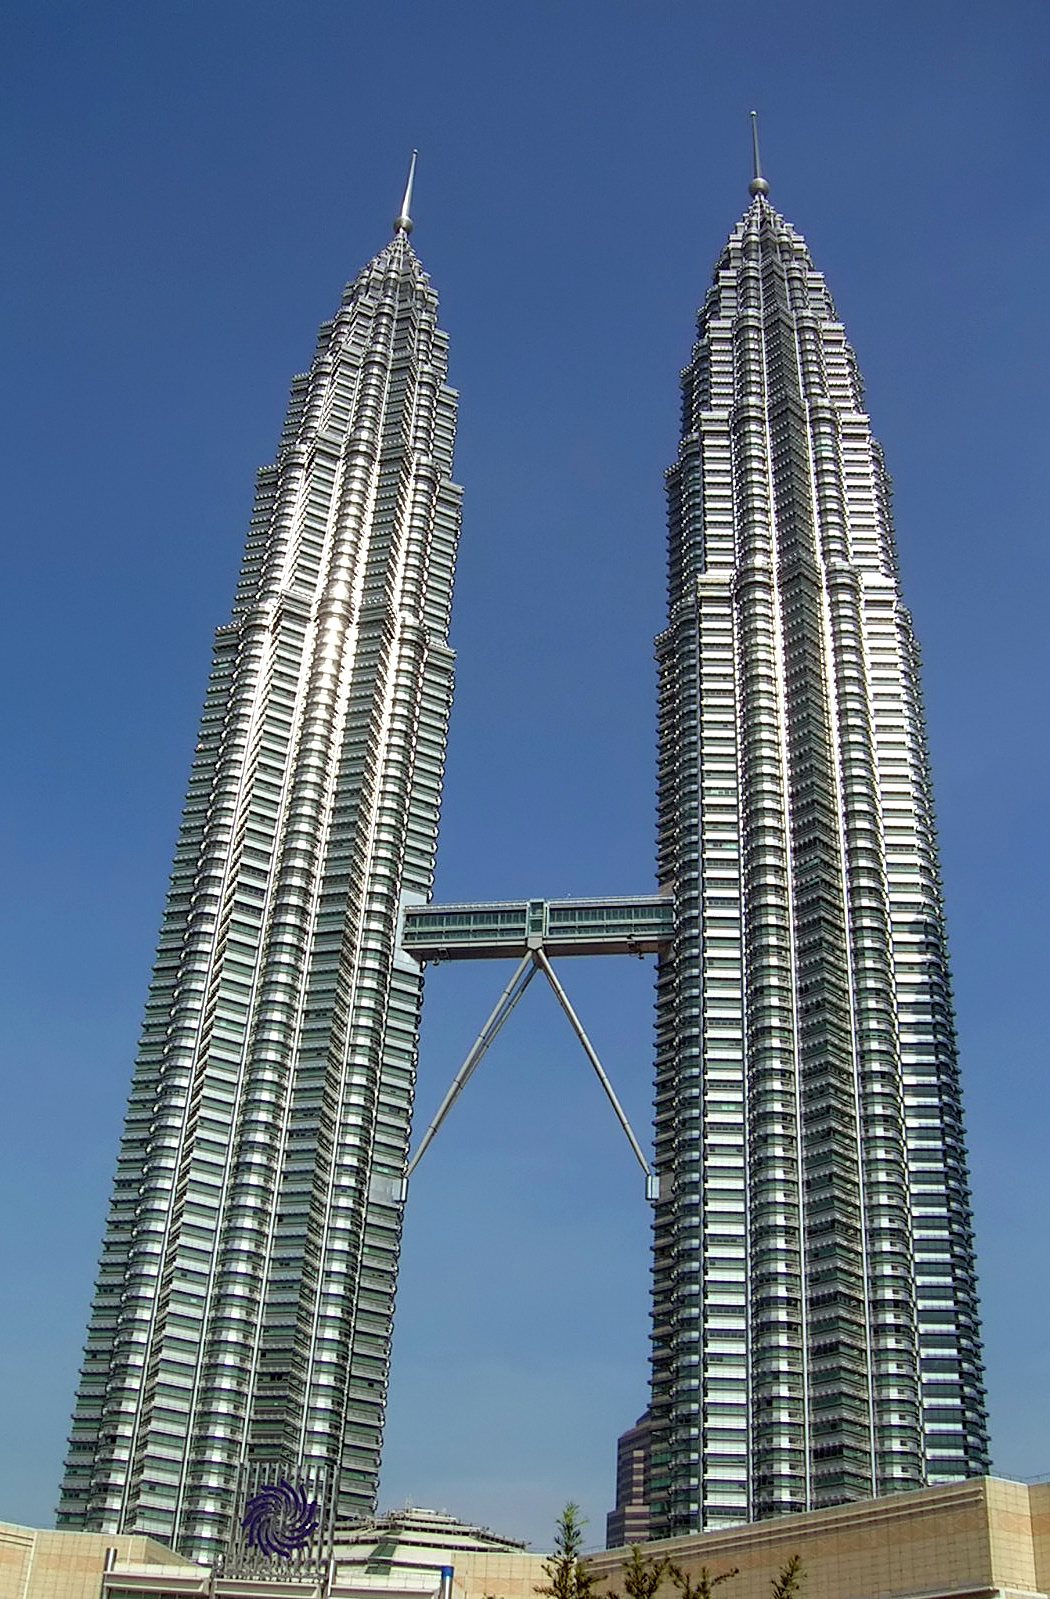 The twin tower